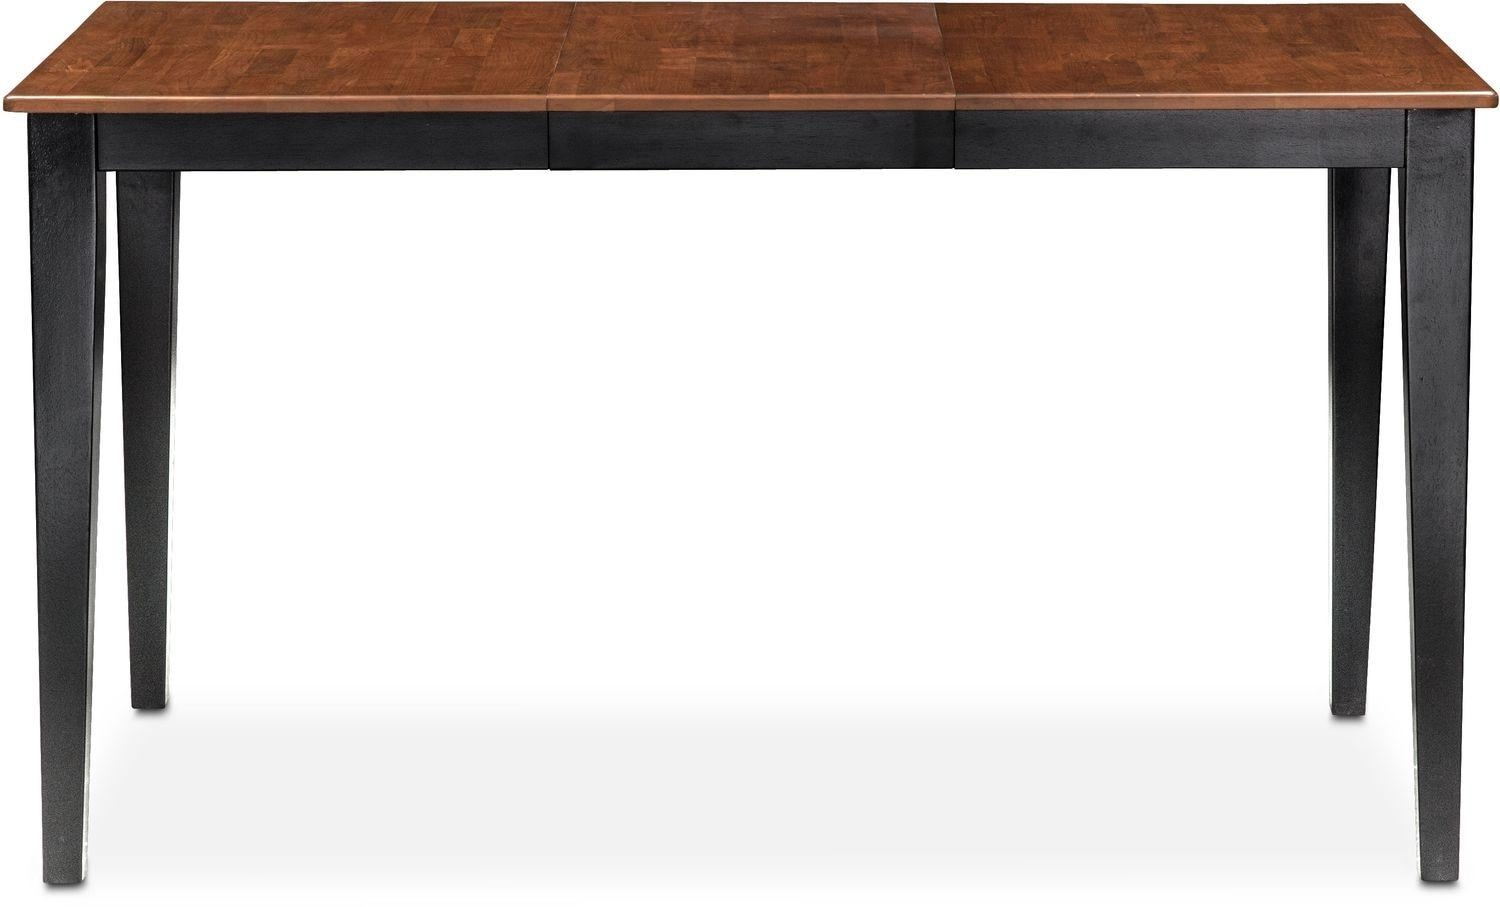 Nantucket Counter-Height Table - Black And Cherry | Value City pertaining to Counter Height Sofa Tables